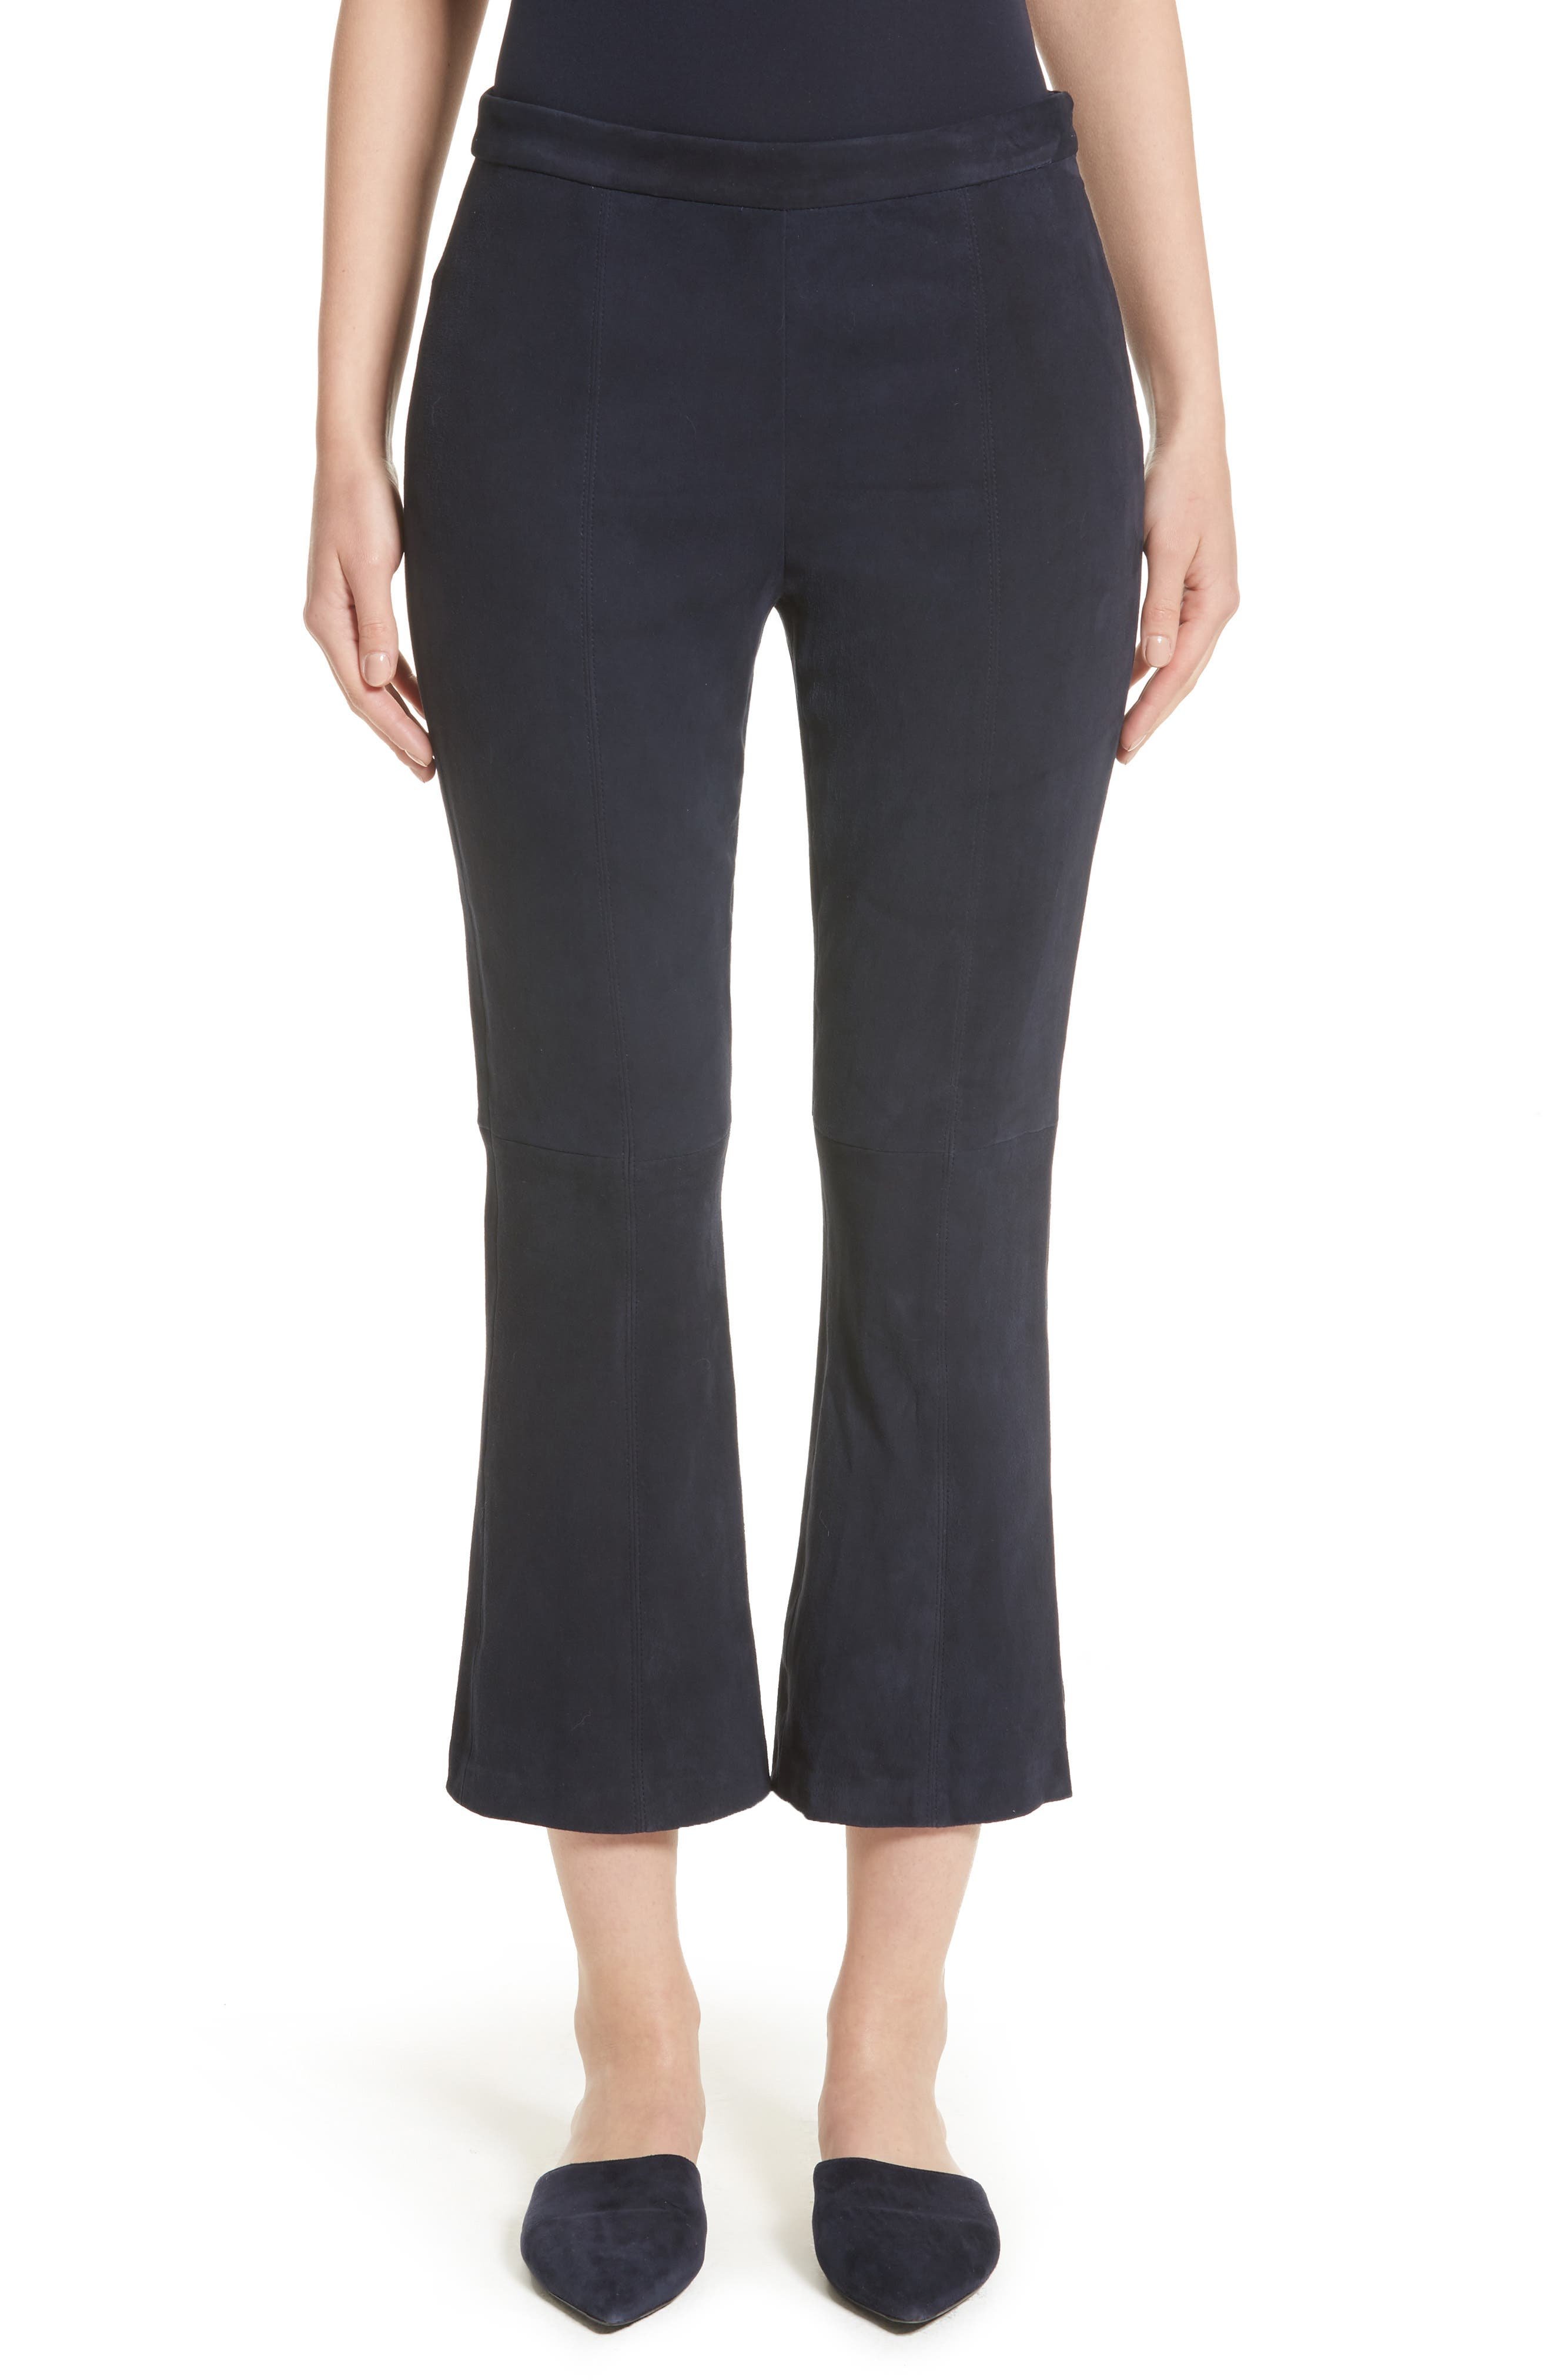 Main Image - St. John Collection Stretch Suede Capri Pants